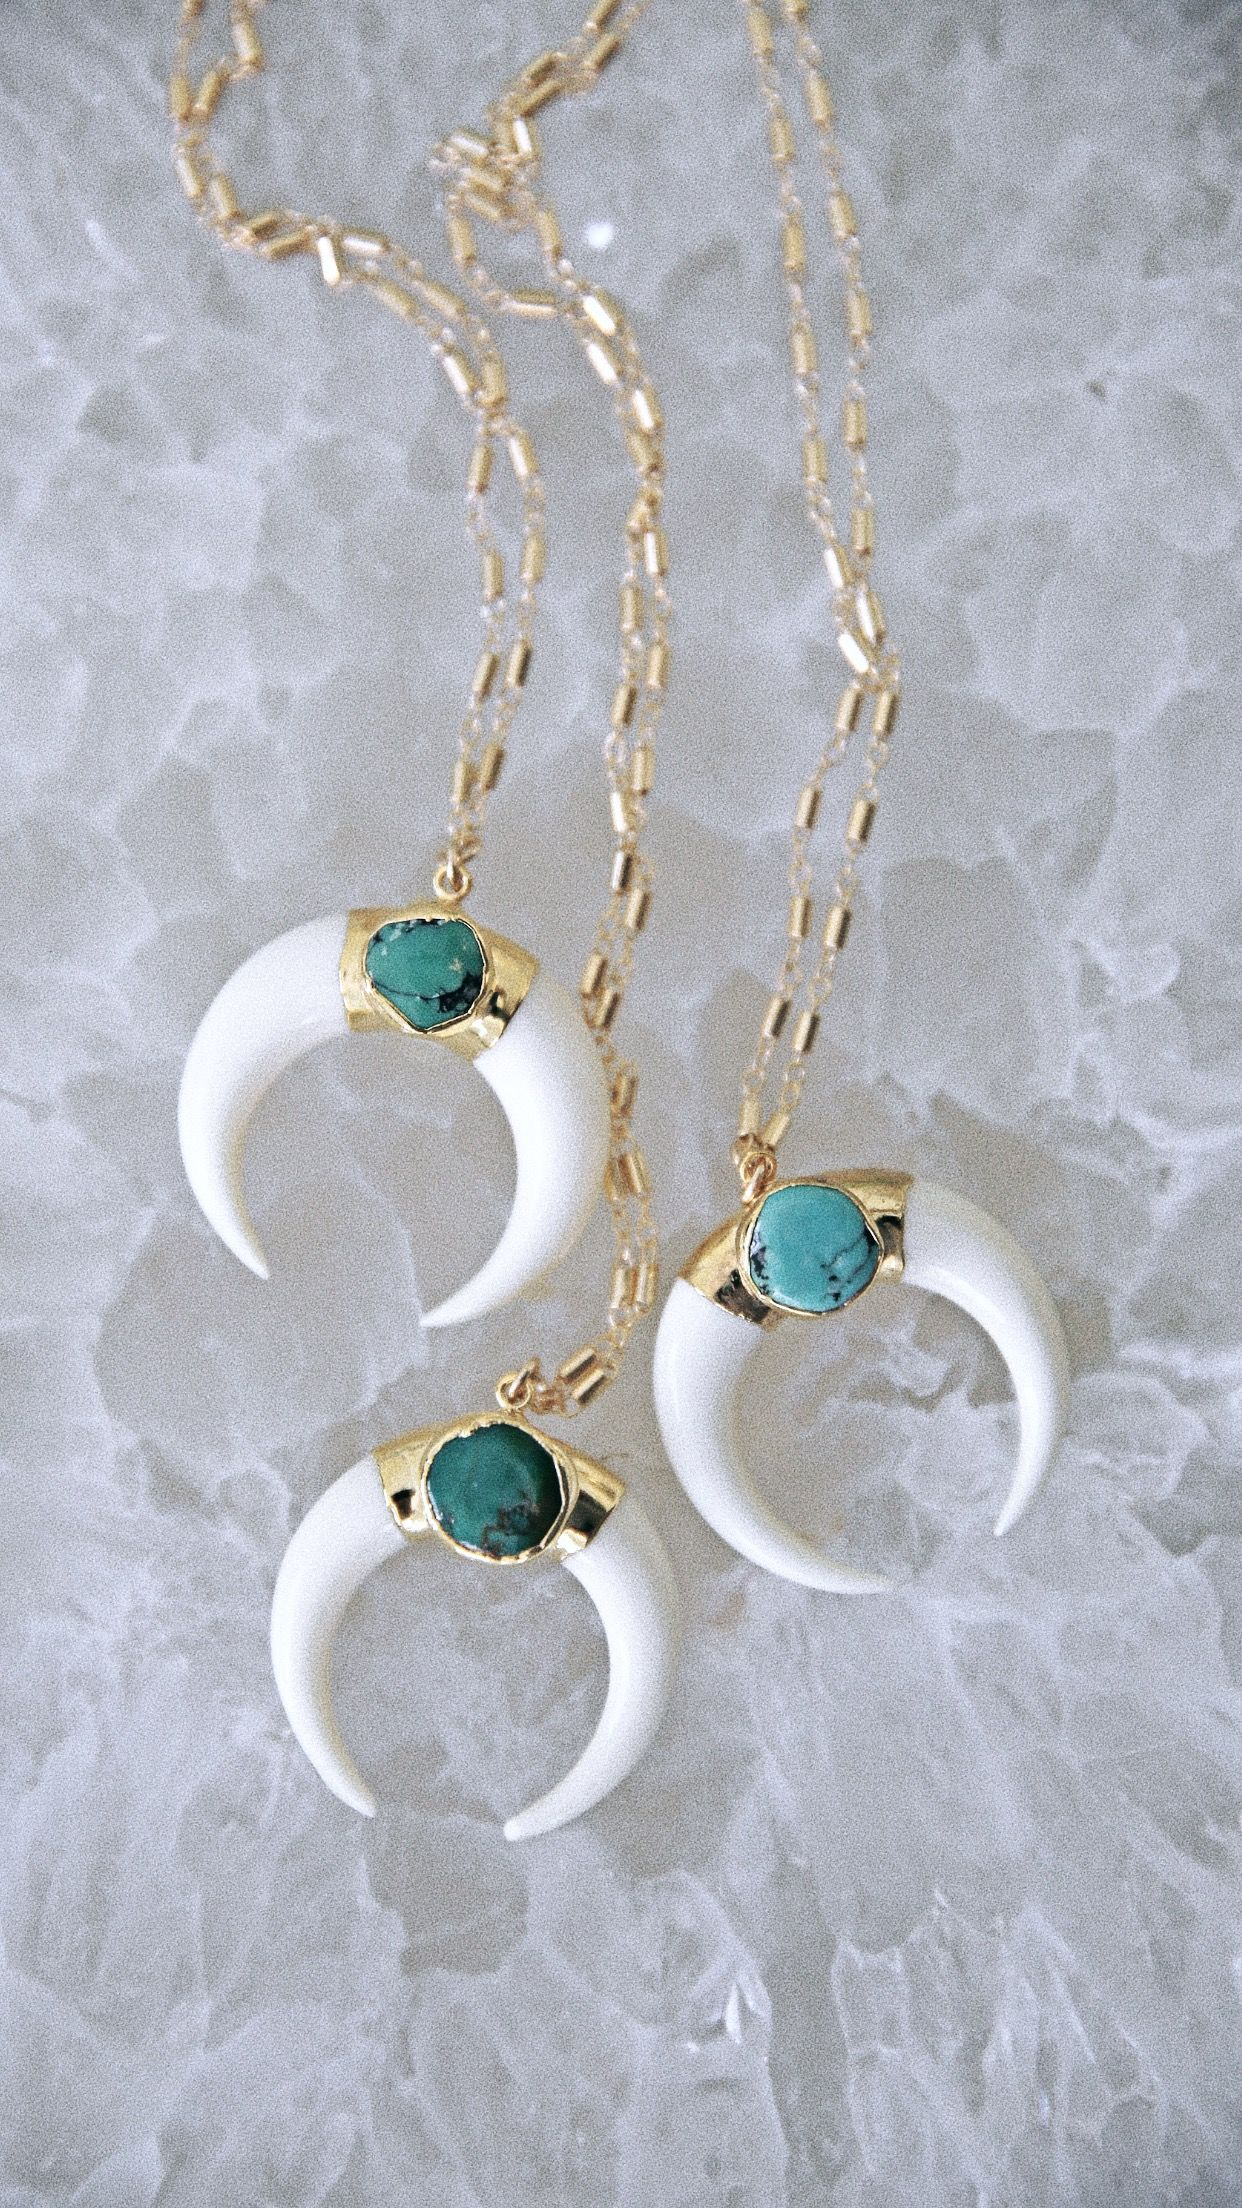 134a44cd84f6 Luna necklace - white + turquoise